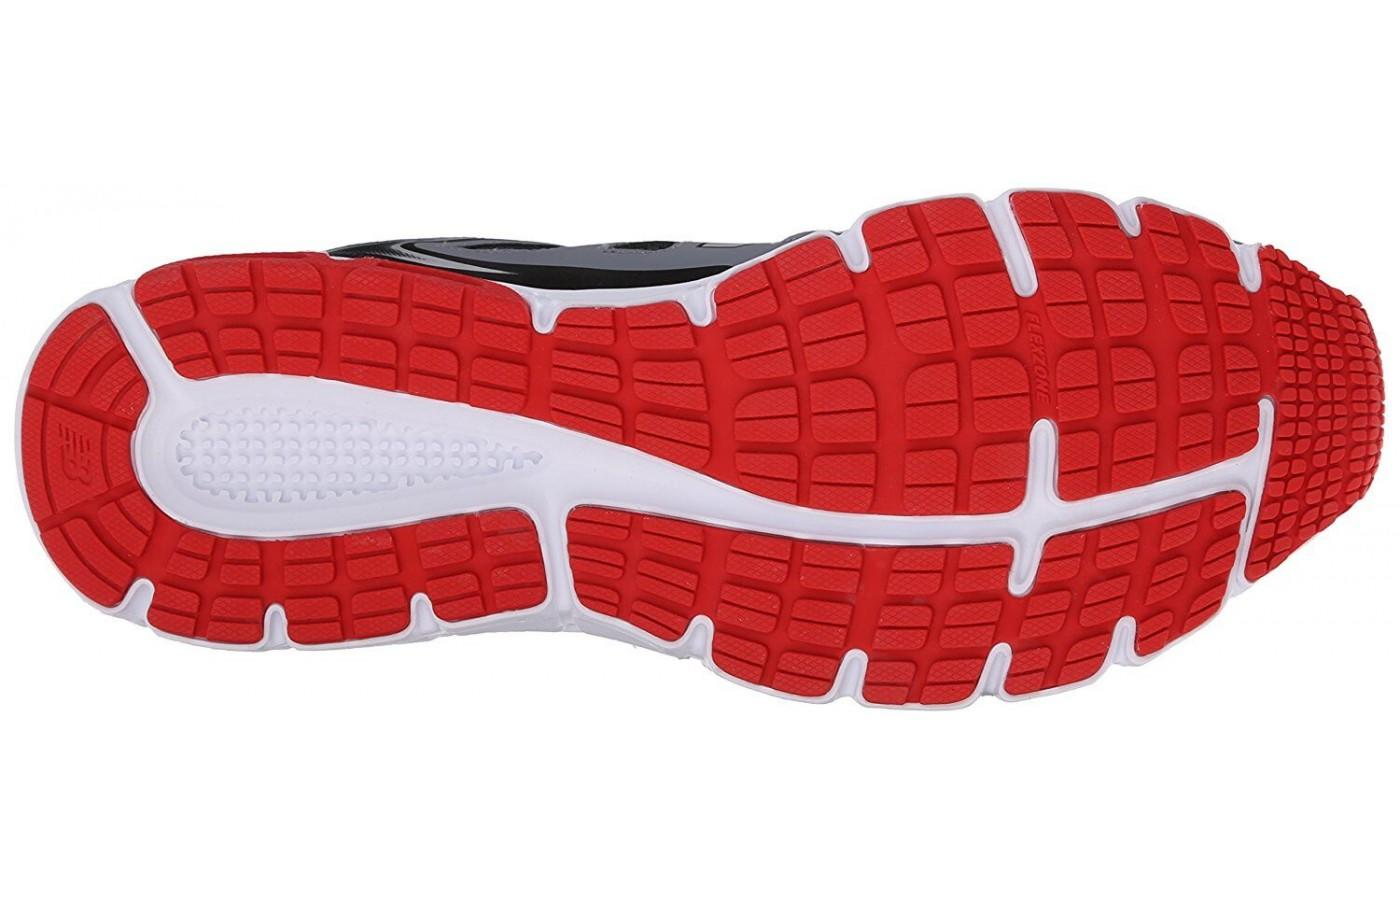 A look at the outsole of the New Balance 560V6.